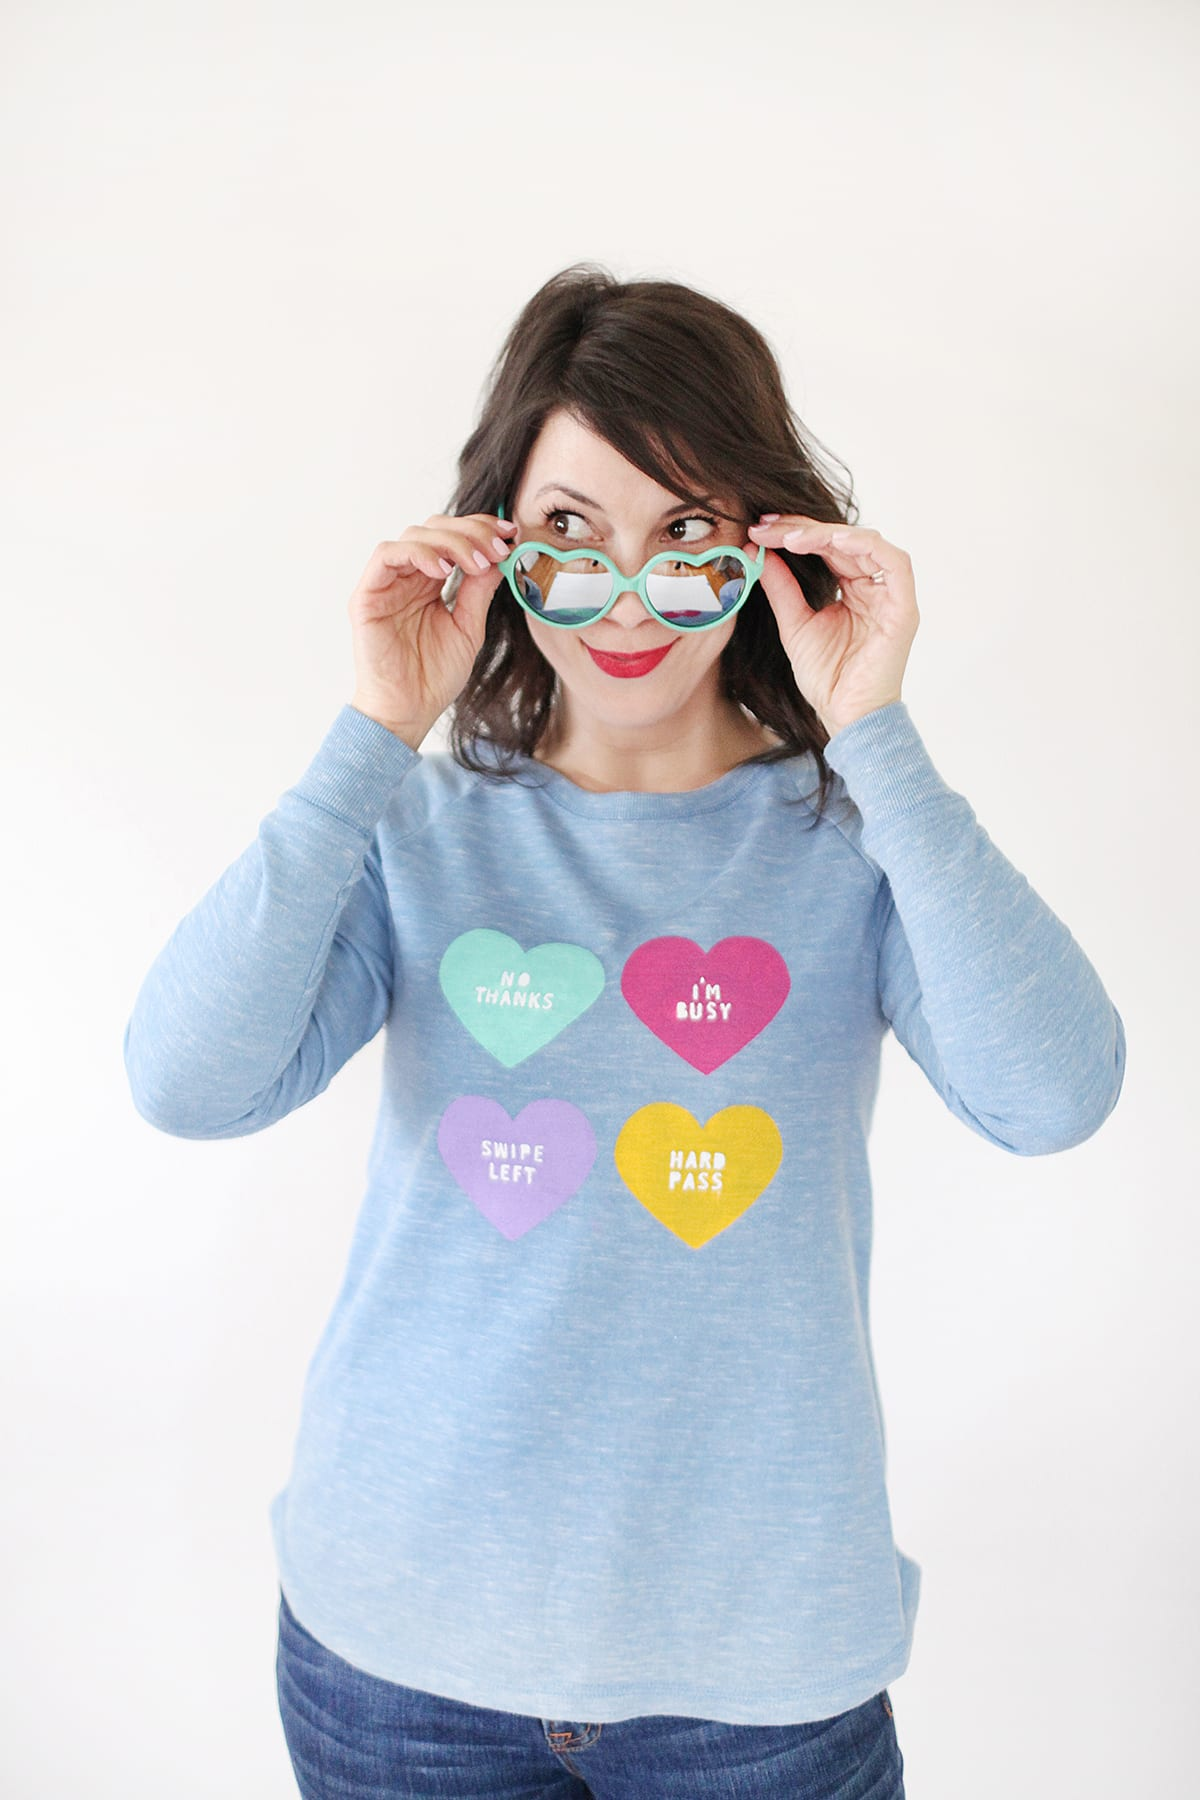 How to Make an Anti Conversation Heart Sweater for Valentine's Day